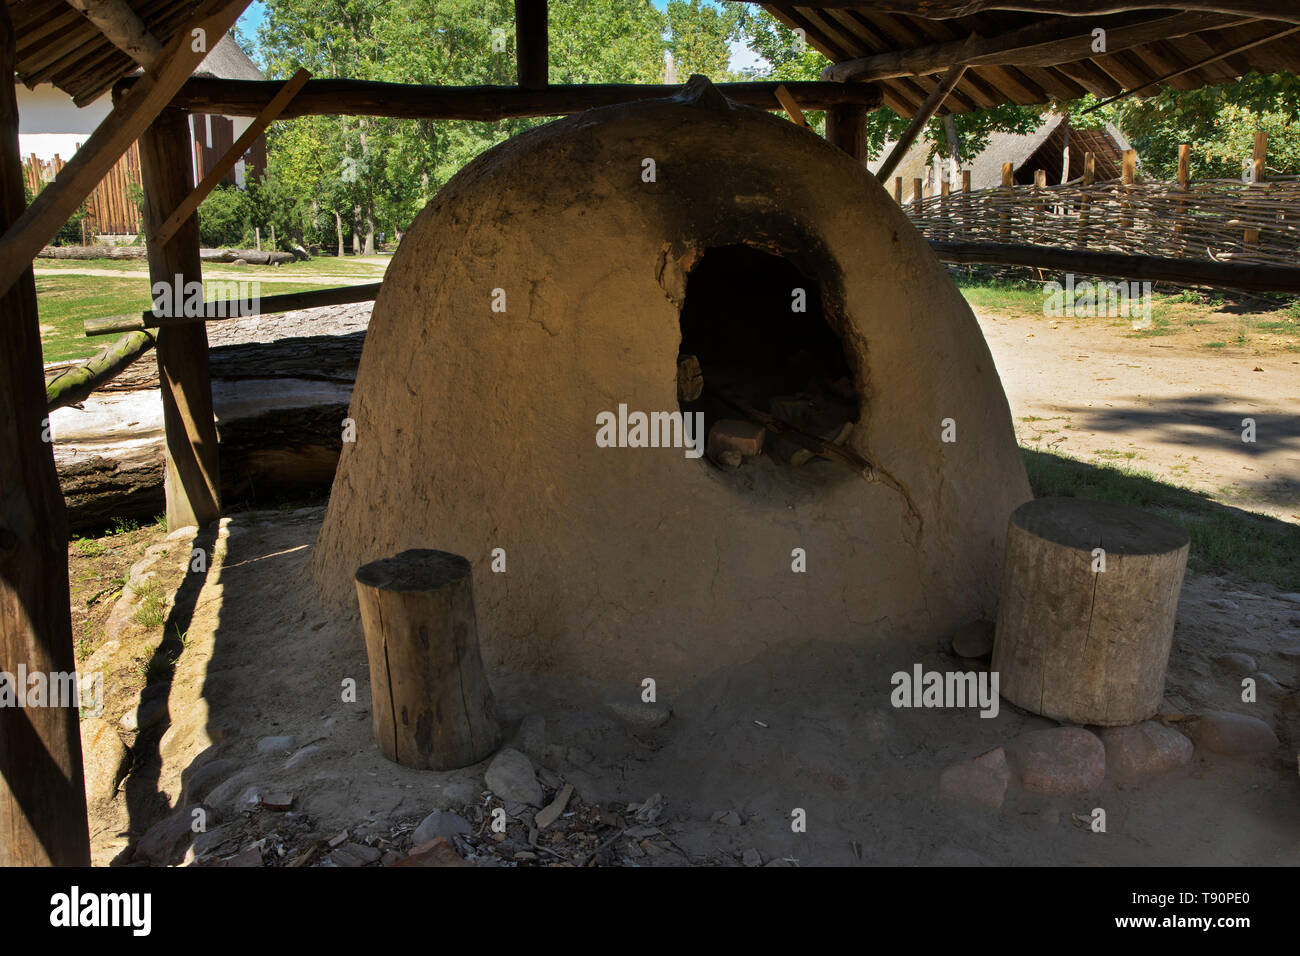 Ancient oven in Biskupin. Poland - Stock Image